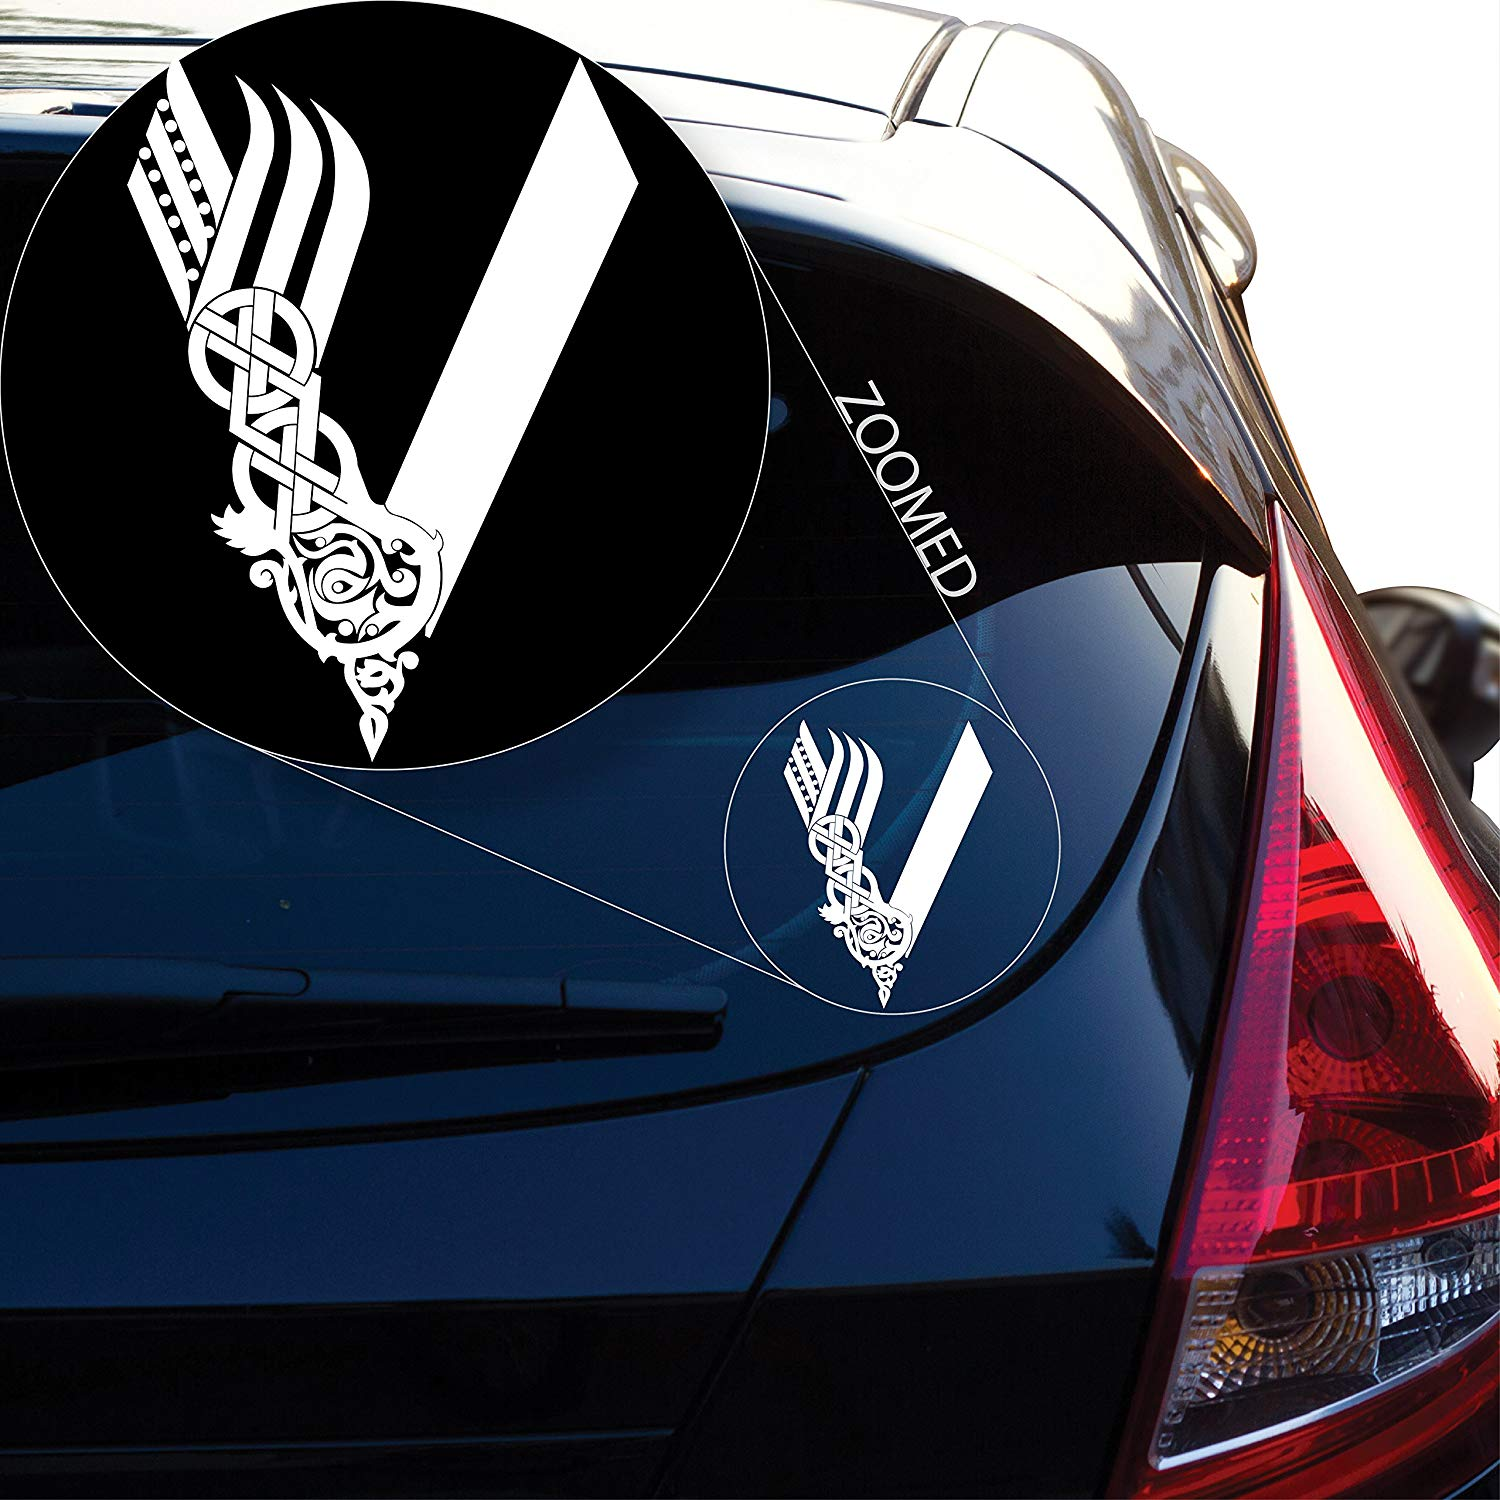 Vikings Tv Show Decal Sticker For Car Window, Laptop And More. # 813 (8